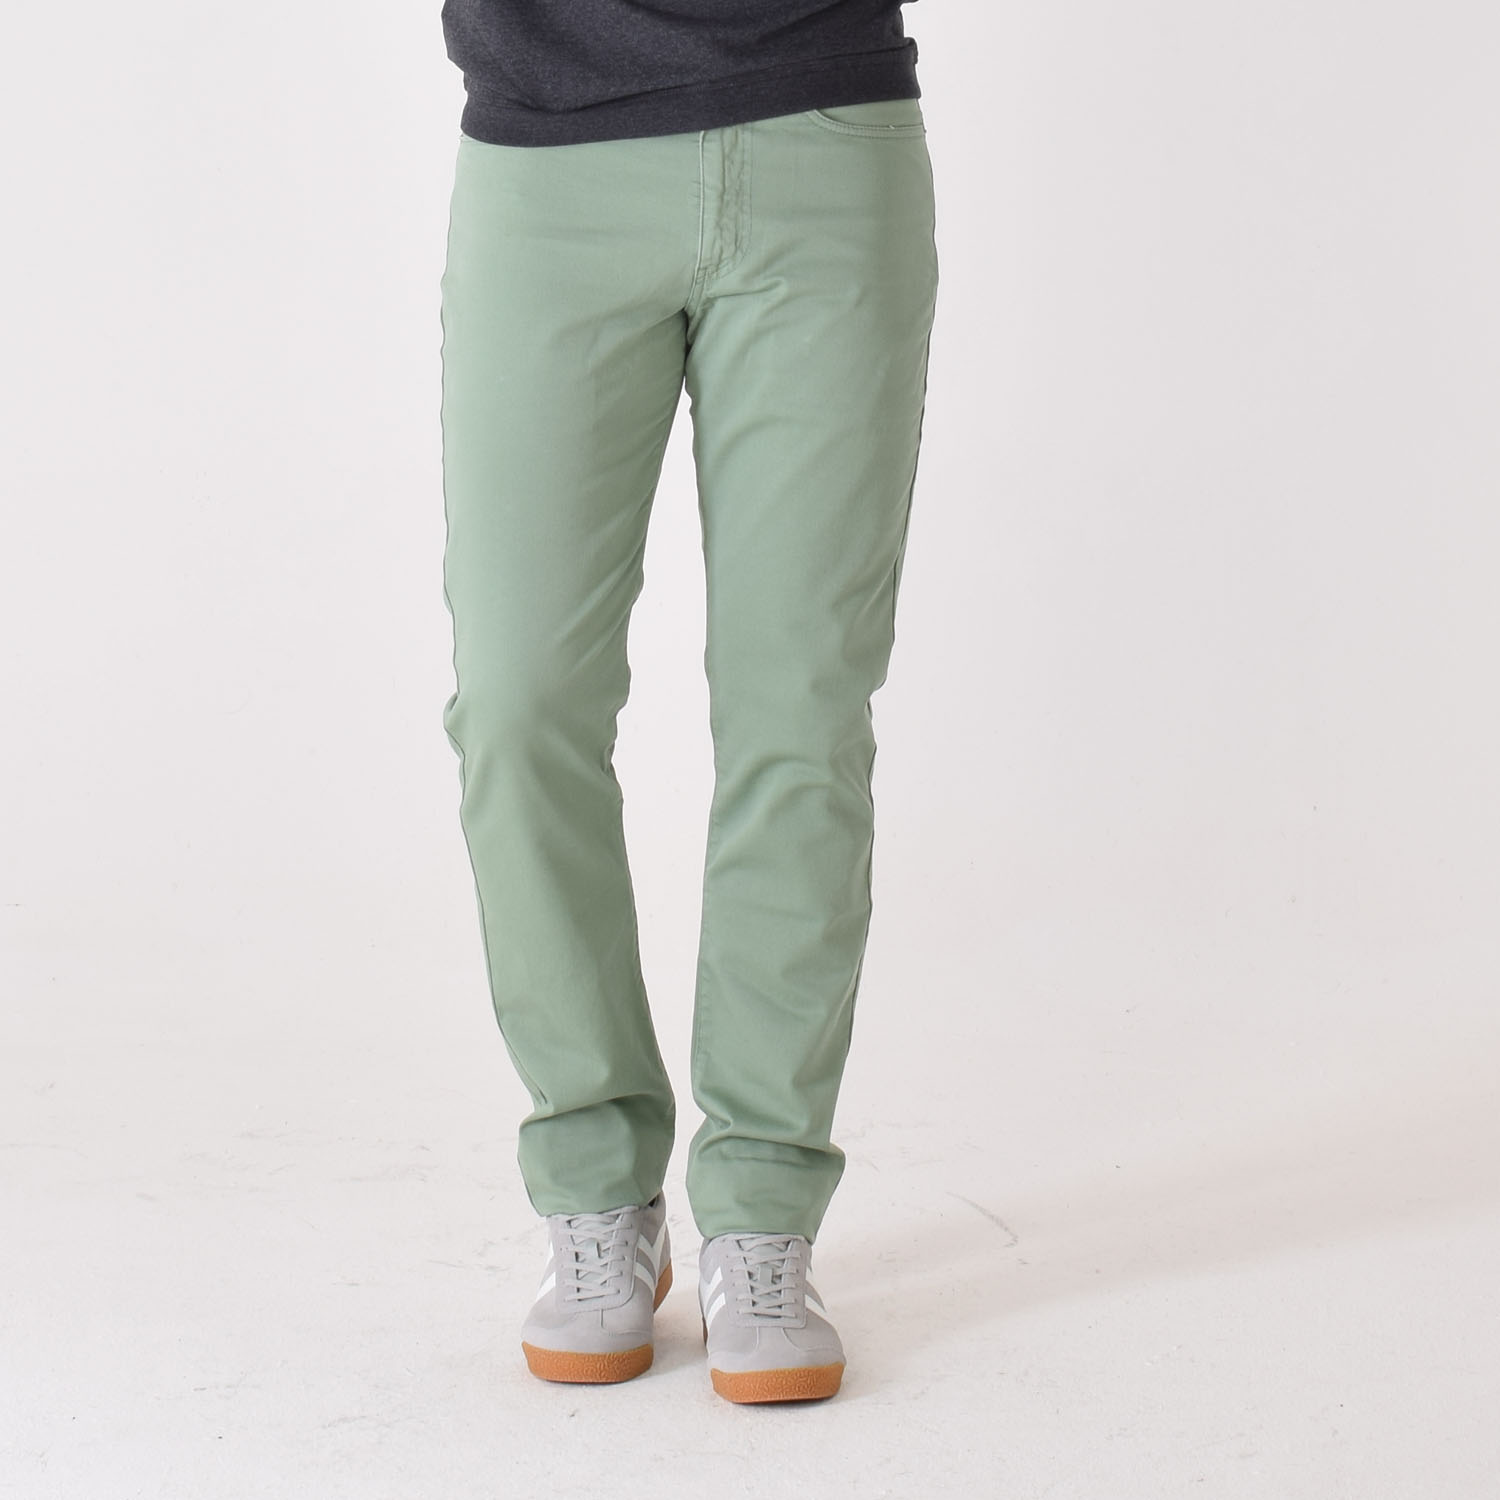 T-lab-Bude-jeans-cactus-green